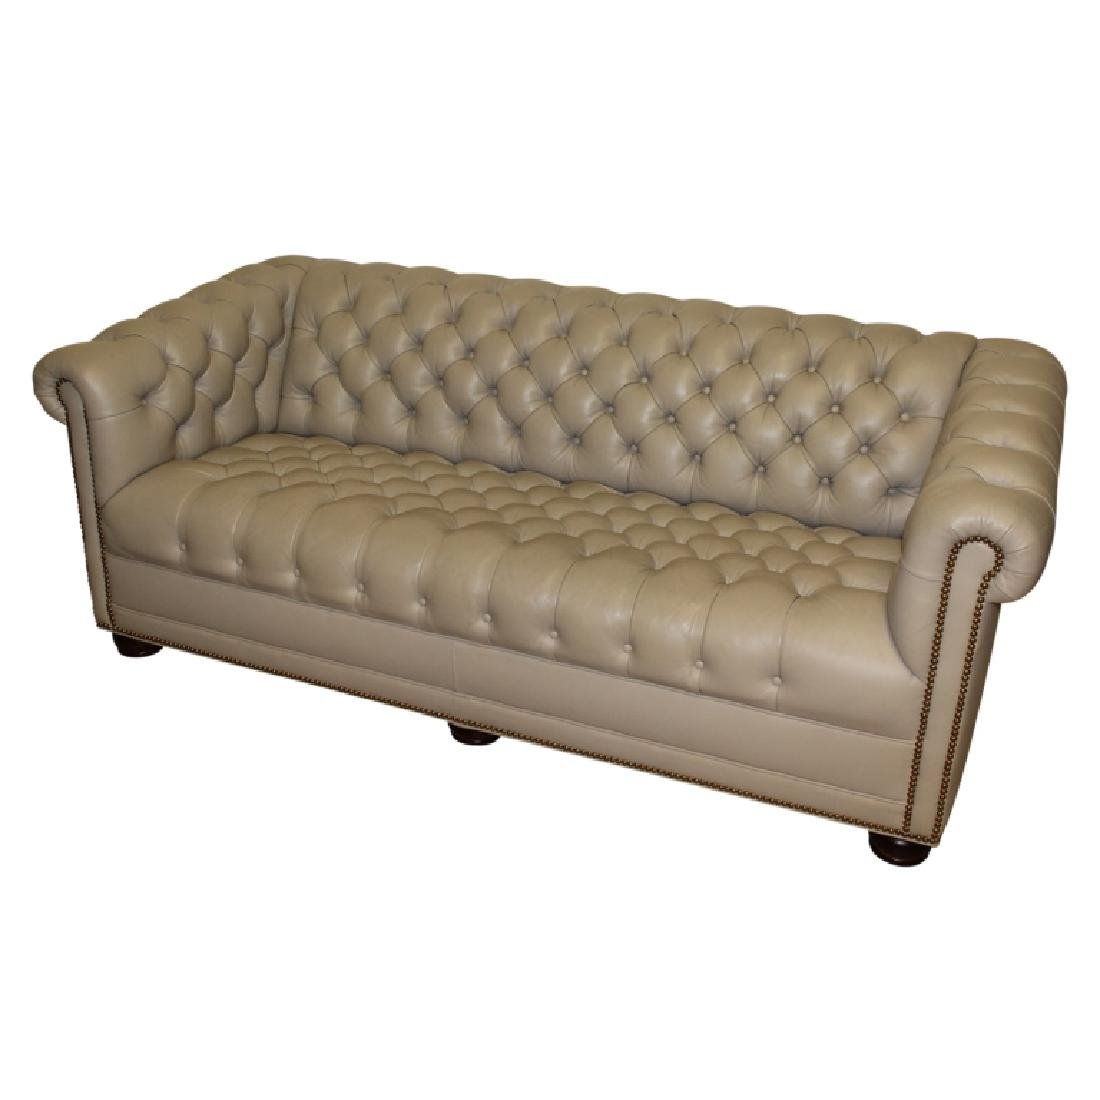 2 Hancock Moore Chesterfield Sofa Loveseat